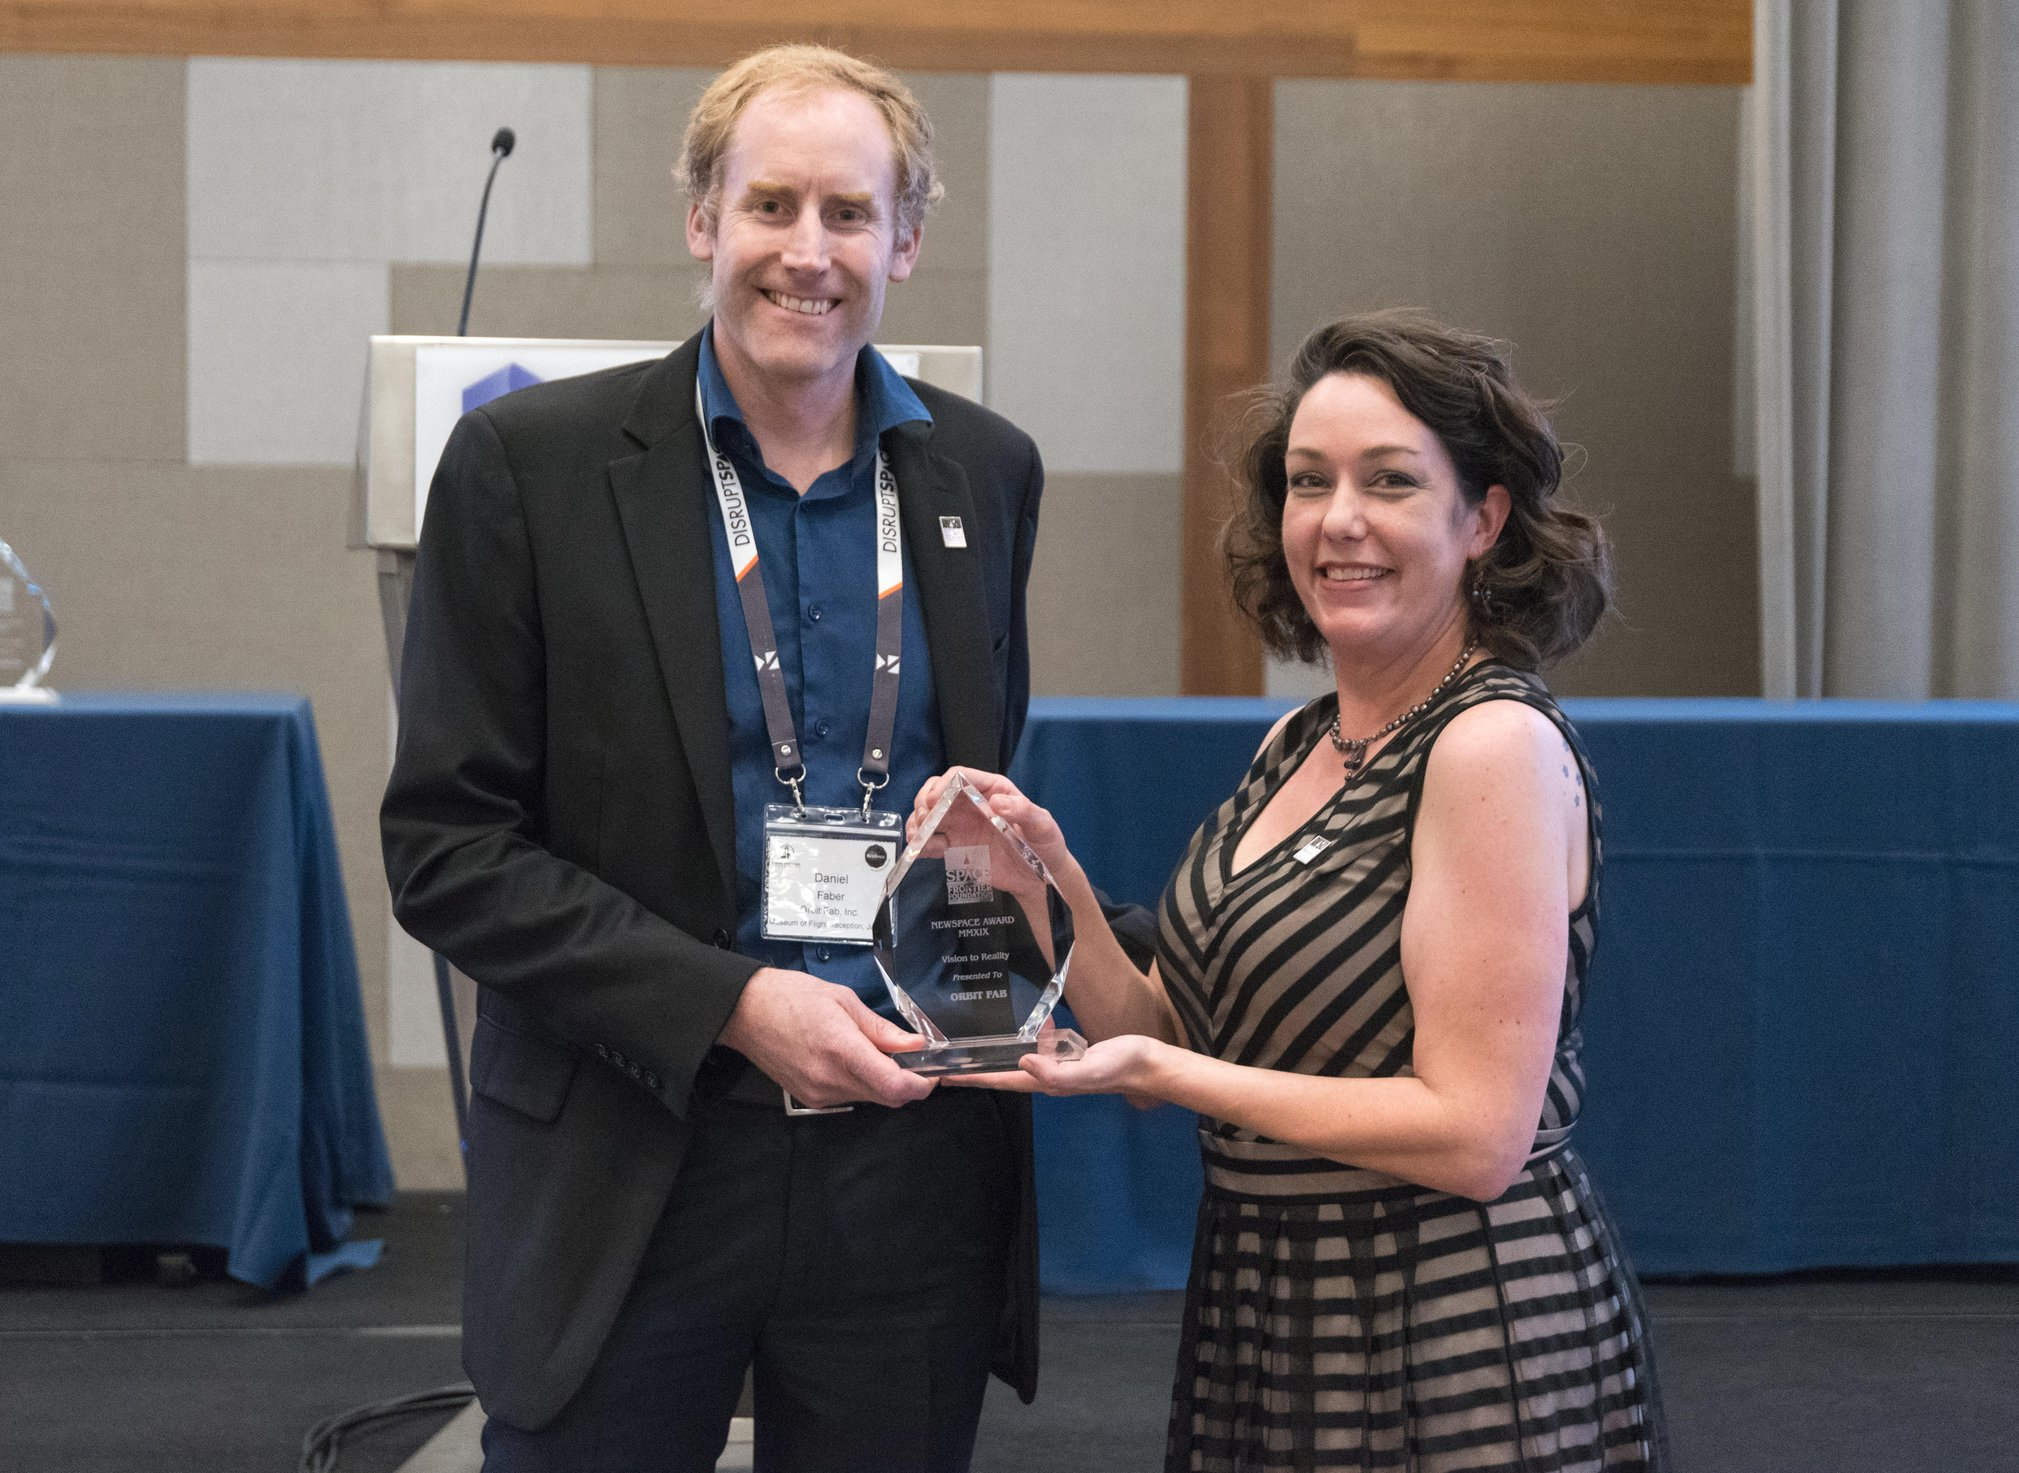 Daniel Faber, CEO of Orbit Fab (Left), receiving the Vision to Reality Award from Space Frontier Foundation board member Meagan Crawford (Right) for Orbit Fab's groundbreaking achievements during the first year of funded operations. Credit: Orbit Fab.